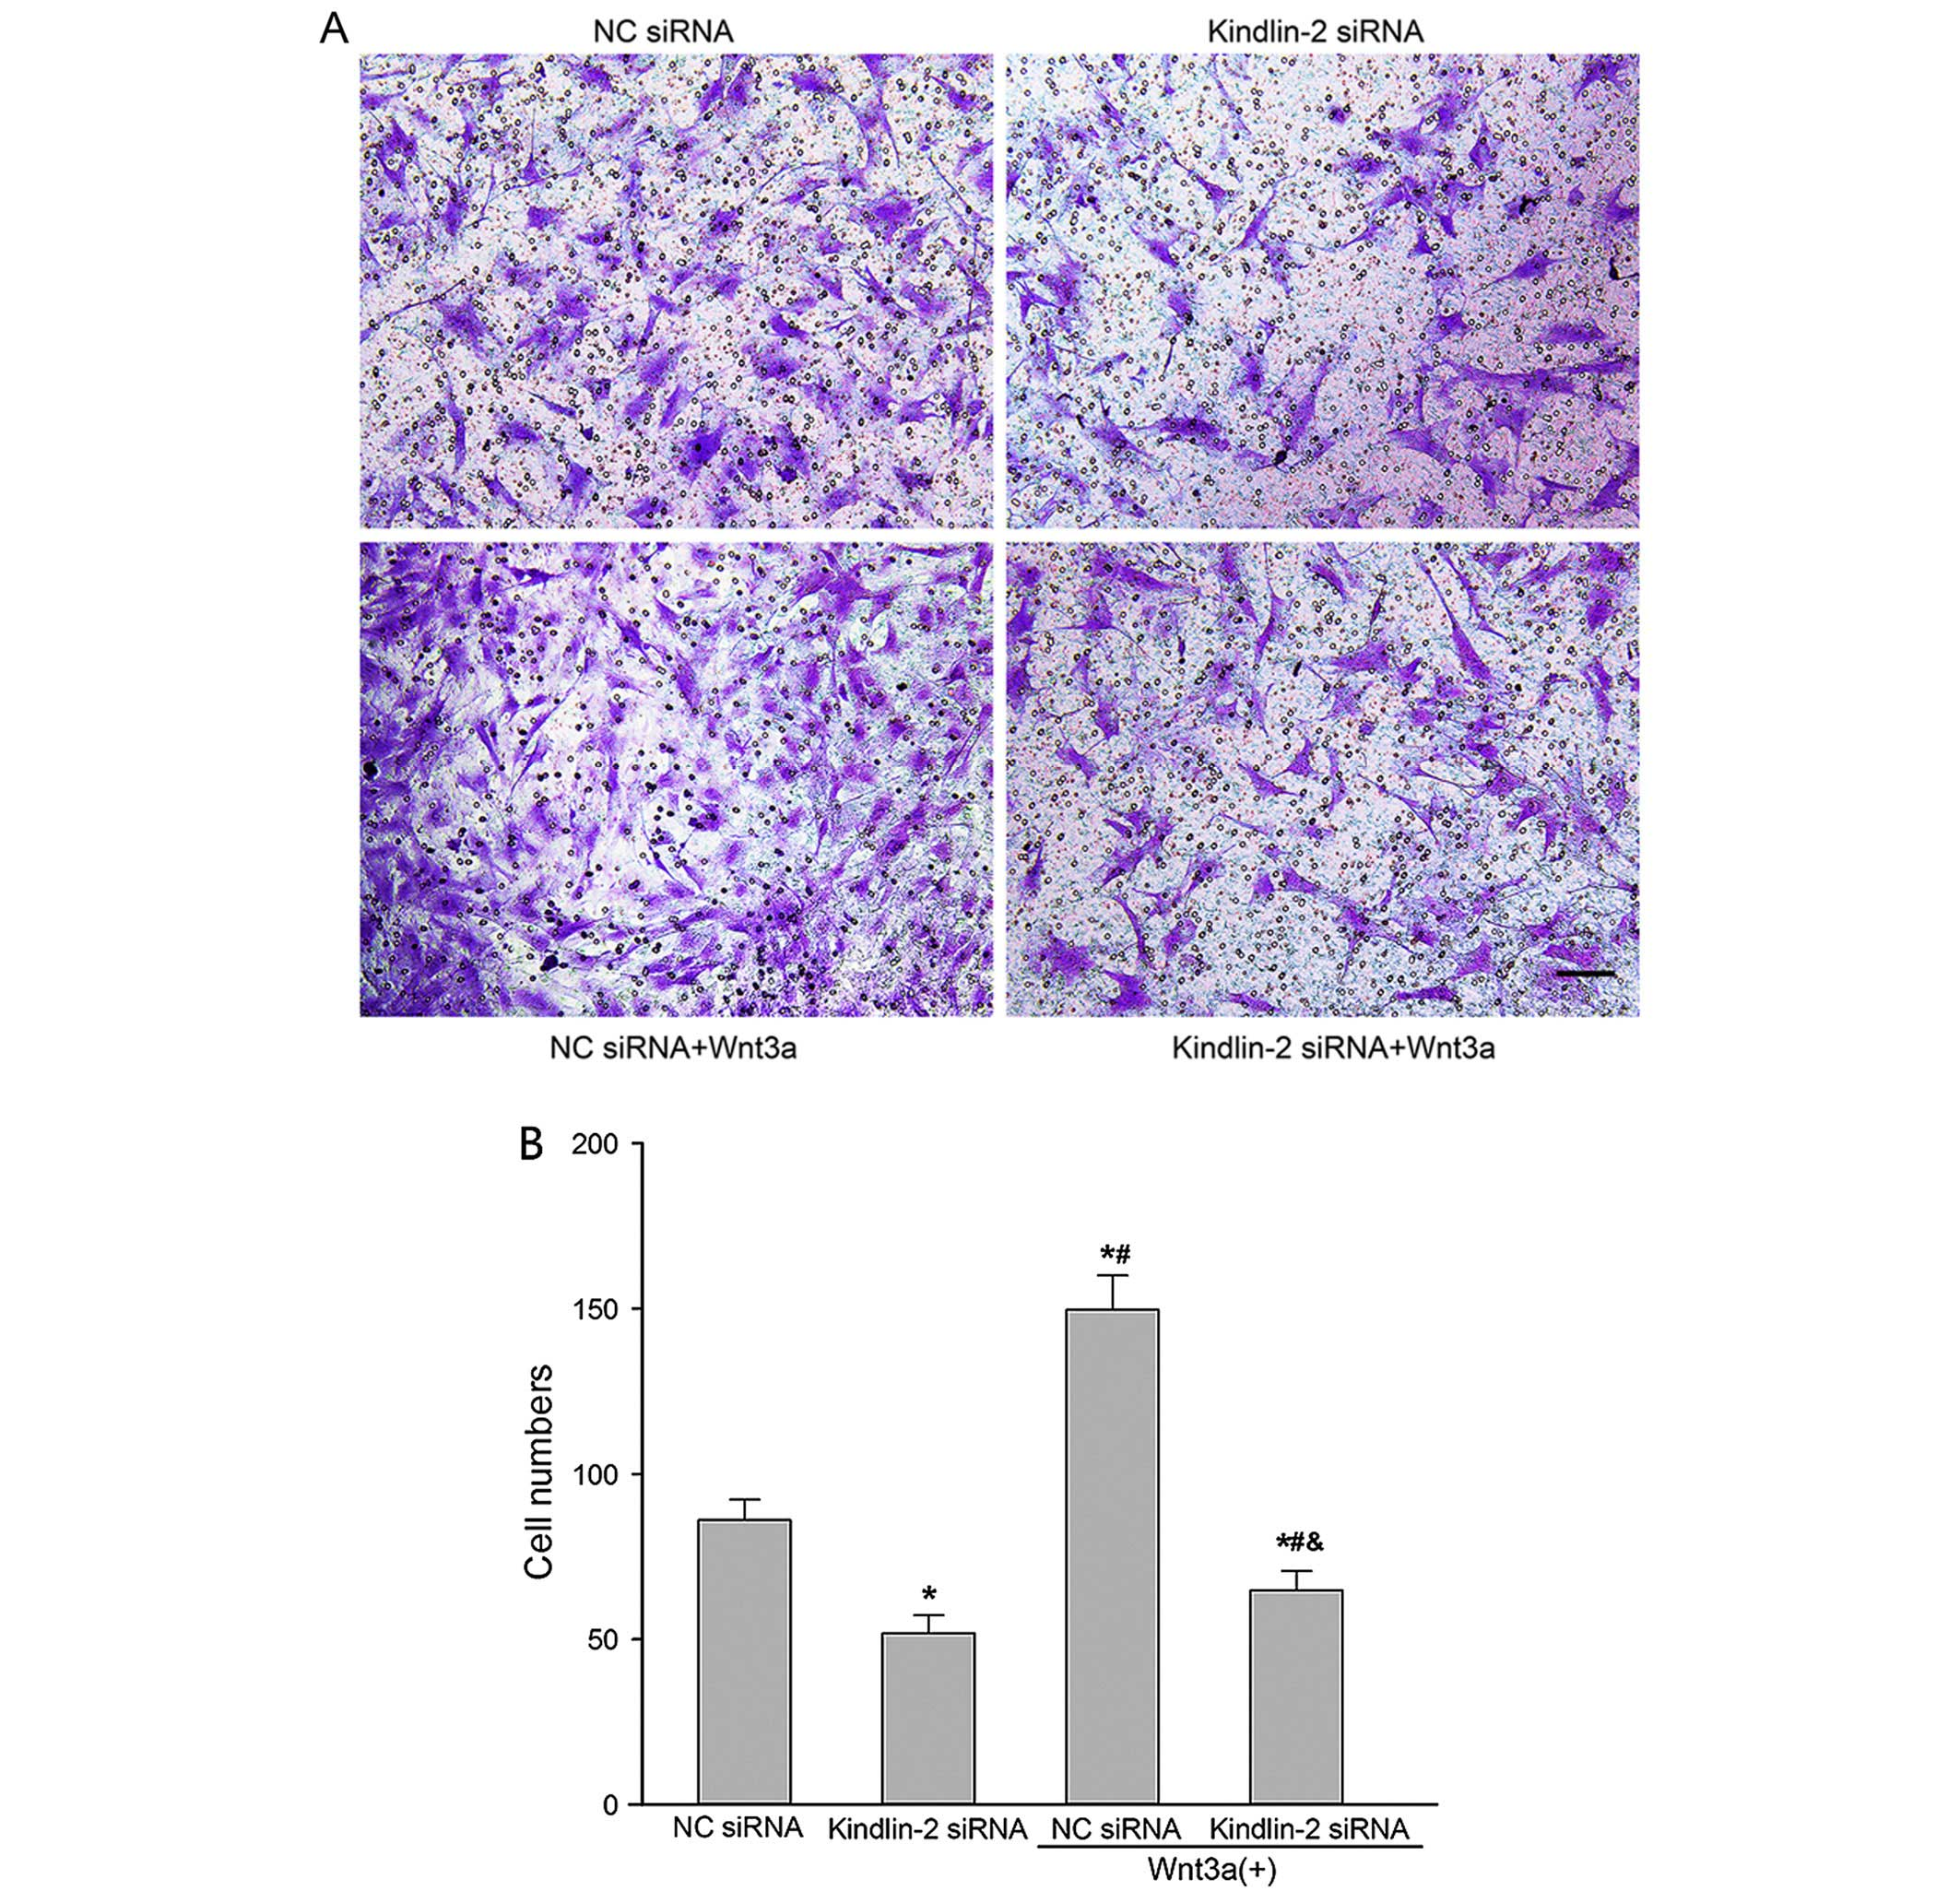 Kindlin 2 Sirna Inhibits Vascular Smooth Muscle Cell Proliferation